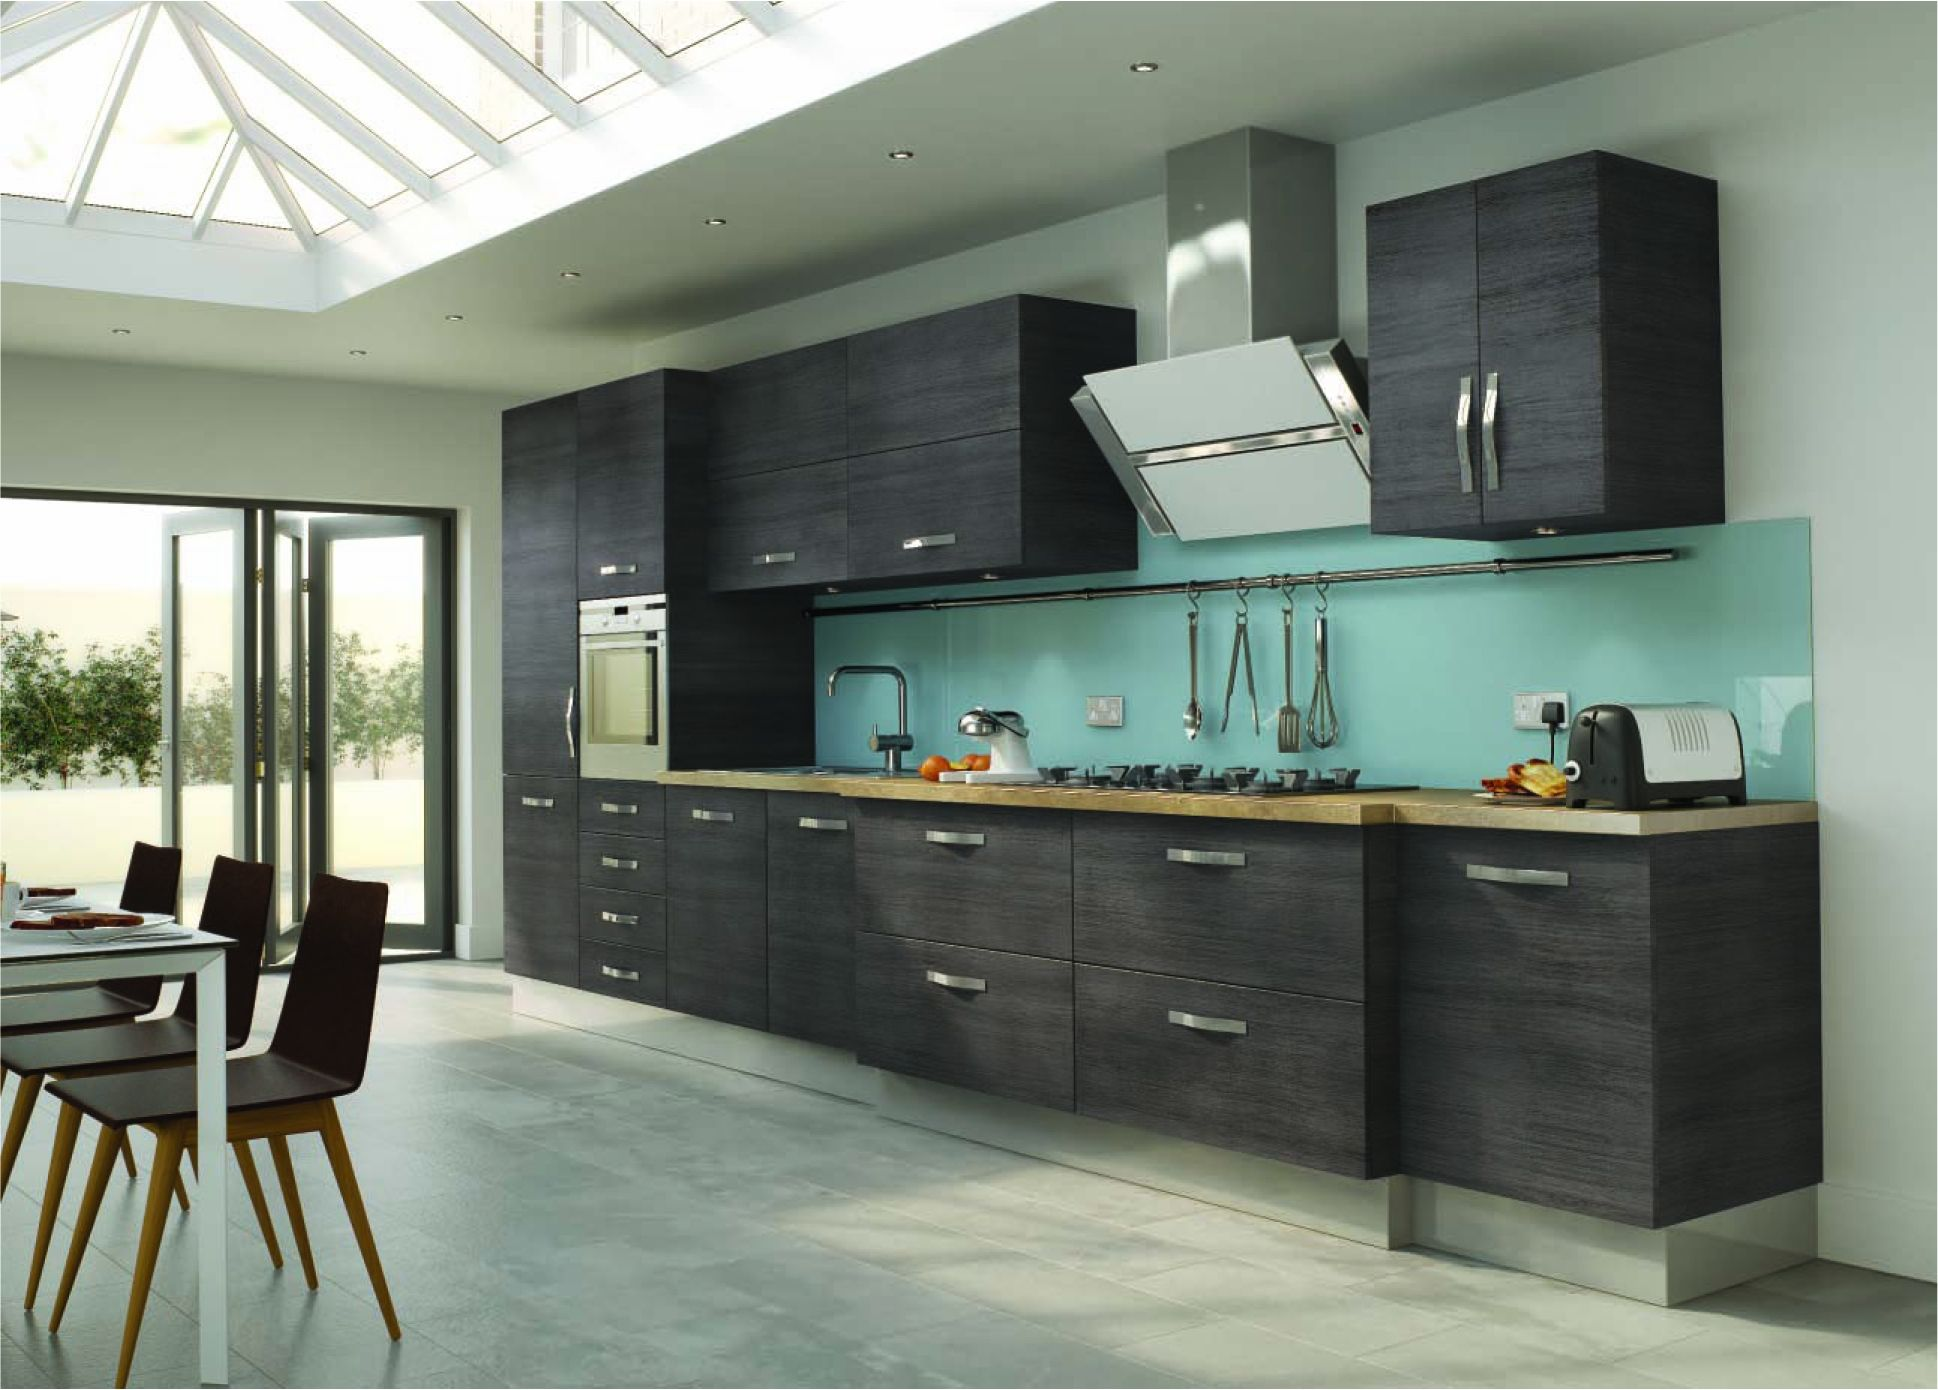 Modern Kitchen Cabinets Design 2013  Httpsodakaustica Stunning Kitchen Design 2013 Decorating Design